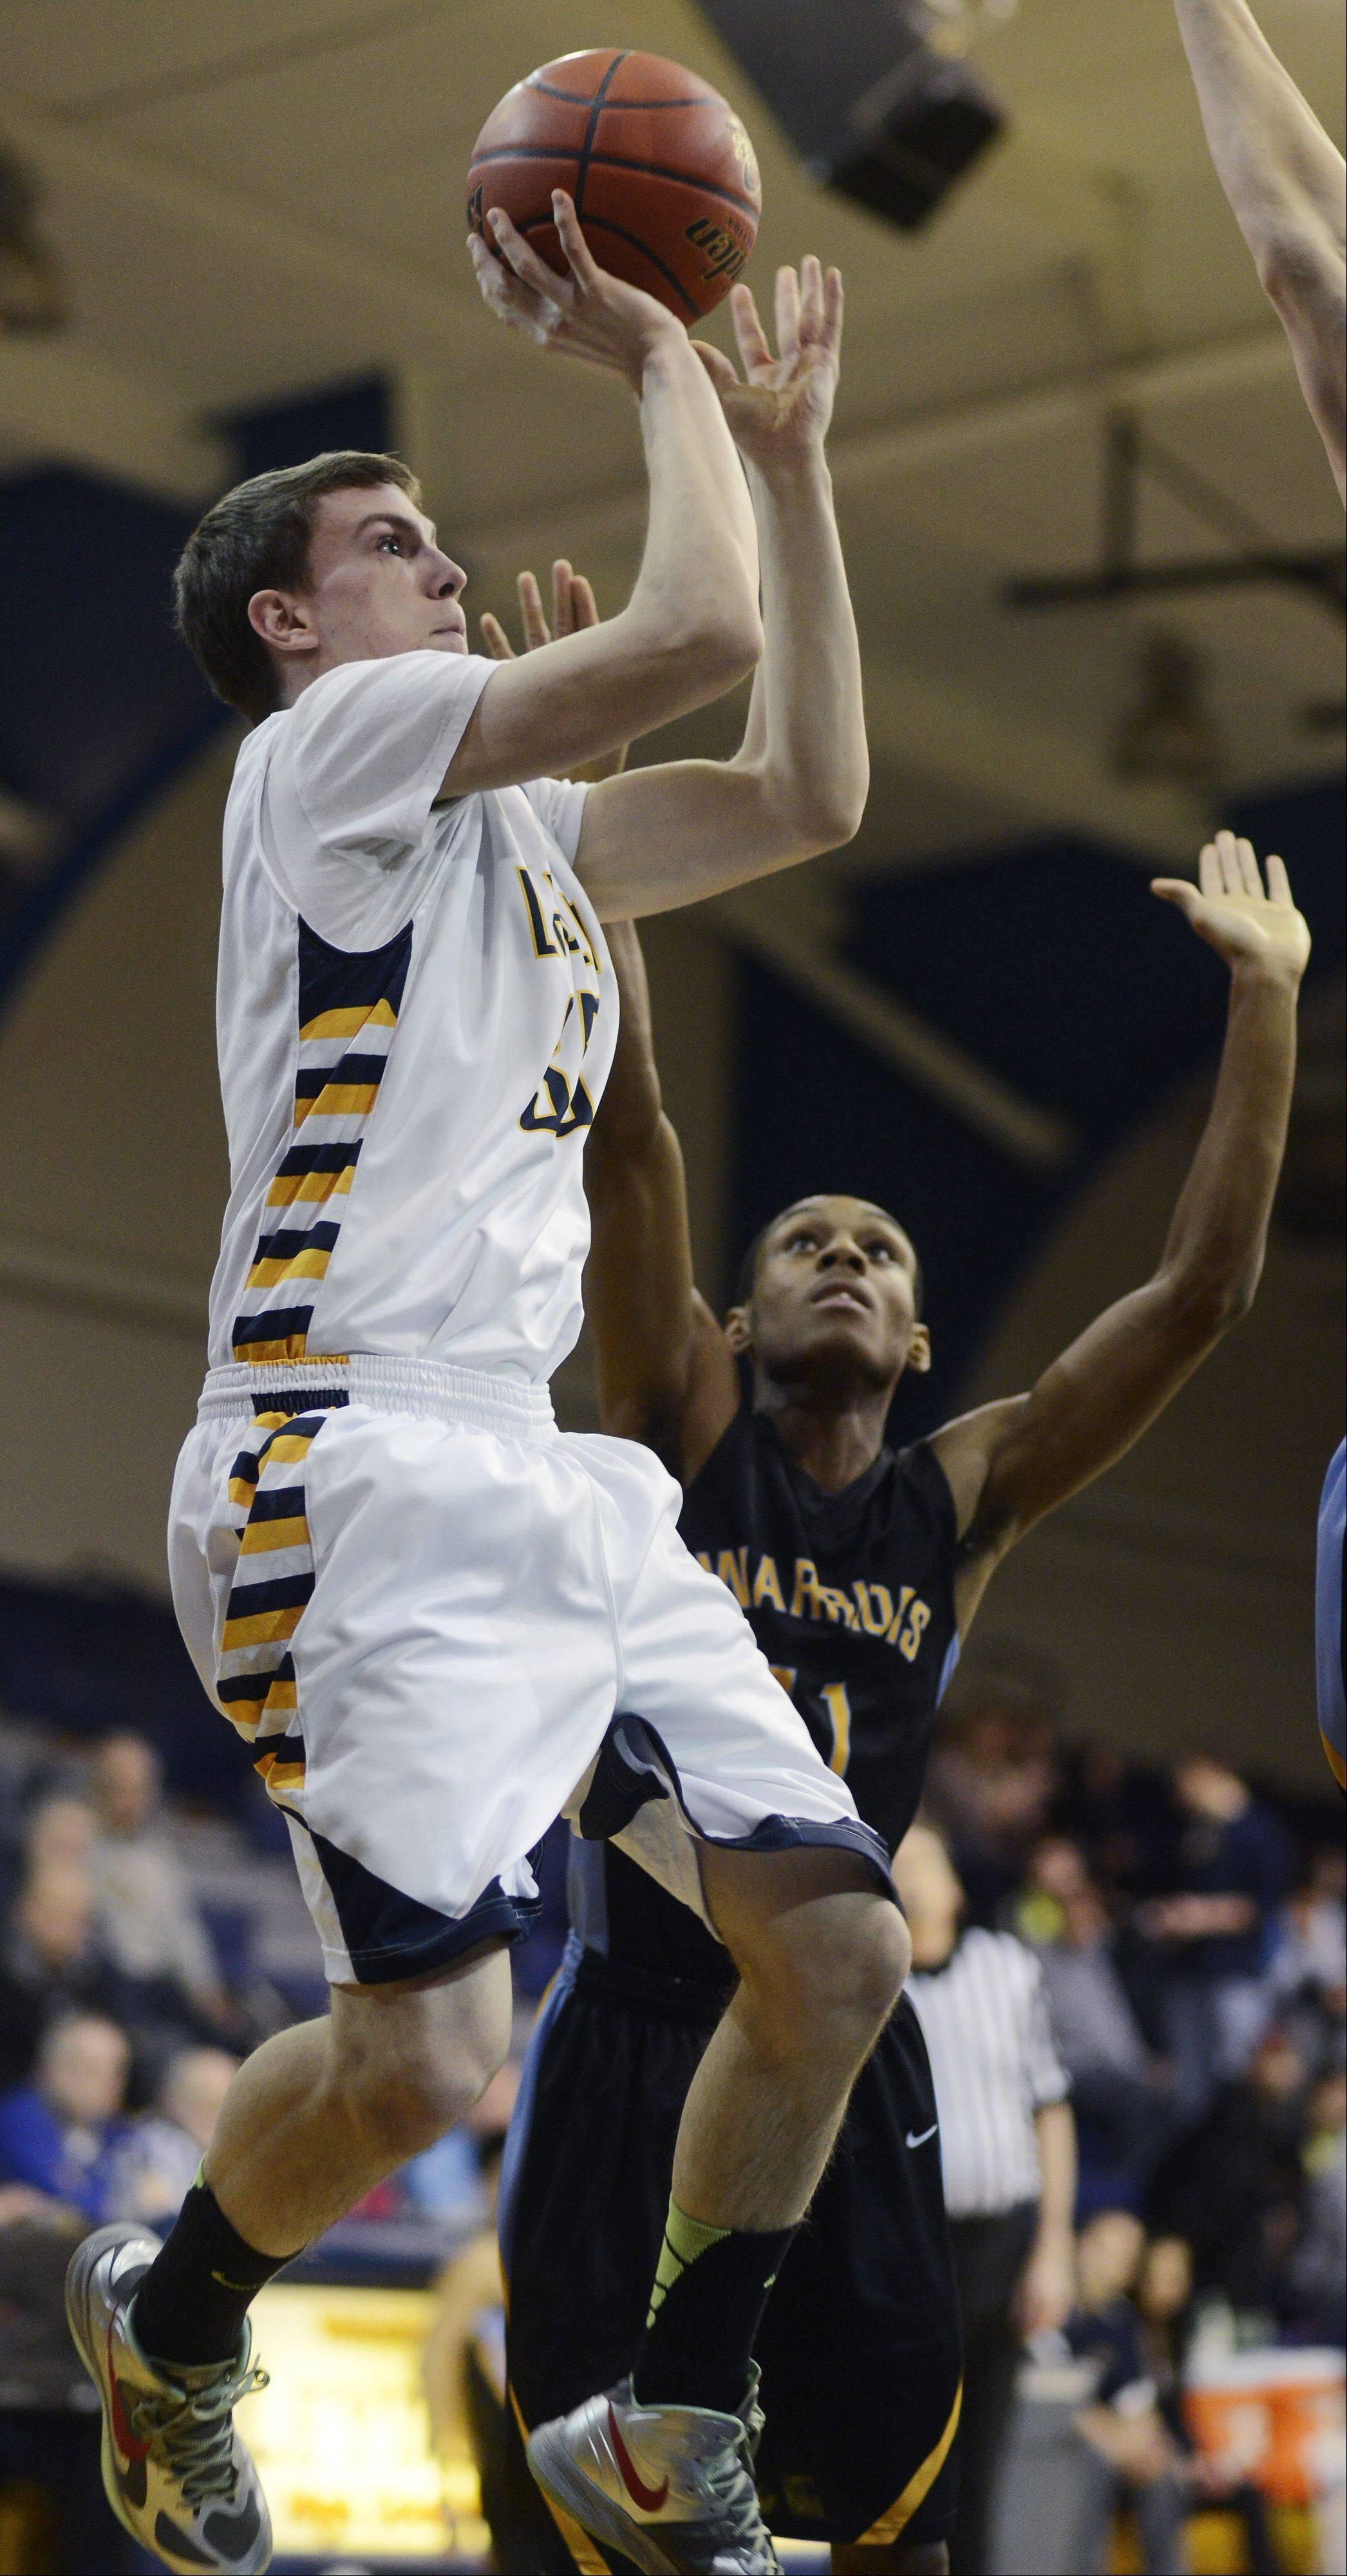 Leyden's Jonny Woolf, left, takes a shot against the Maine West defense including Allante Bates.